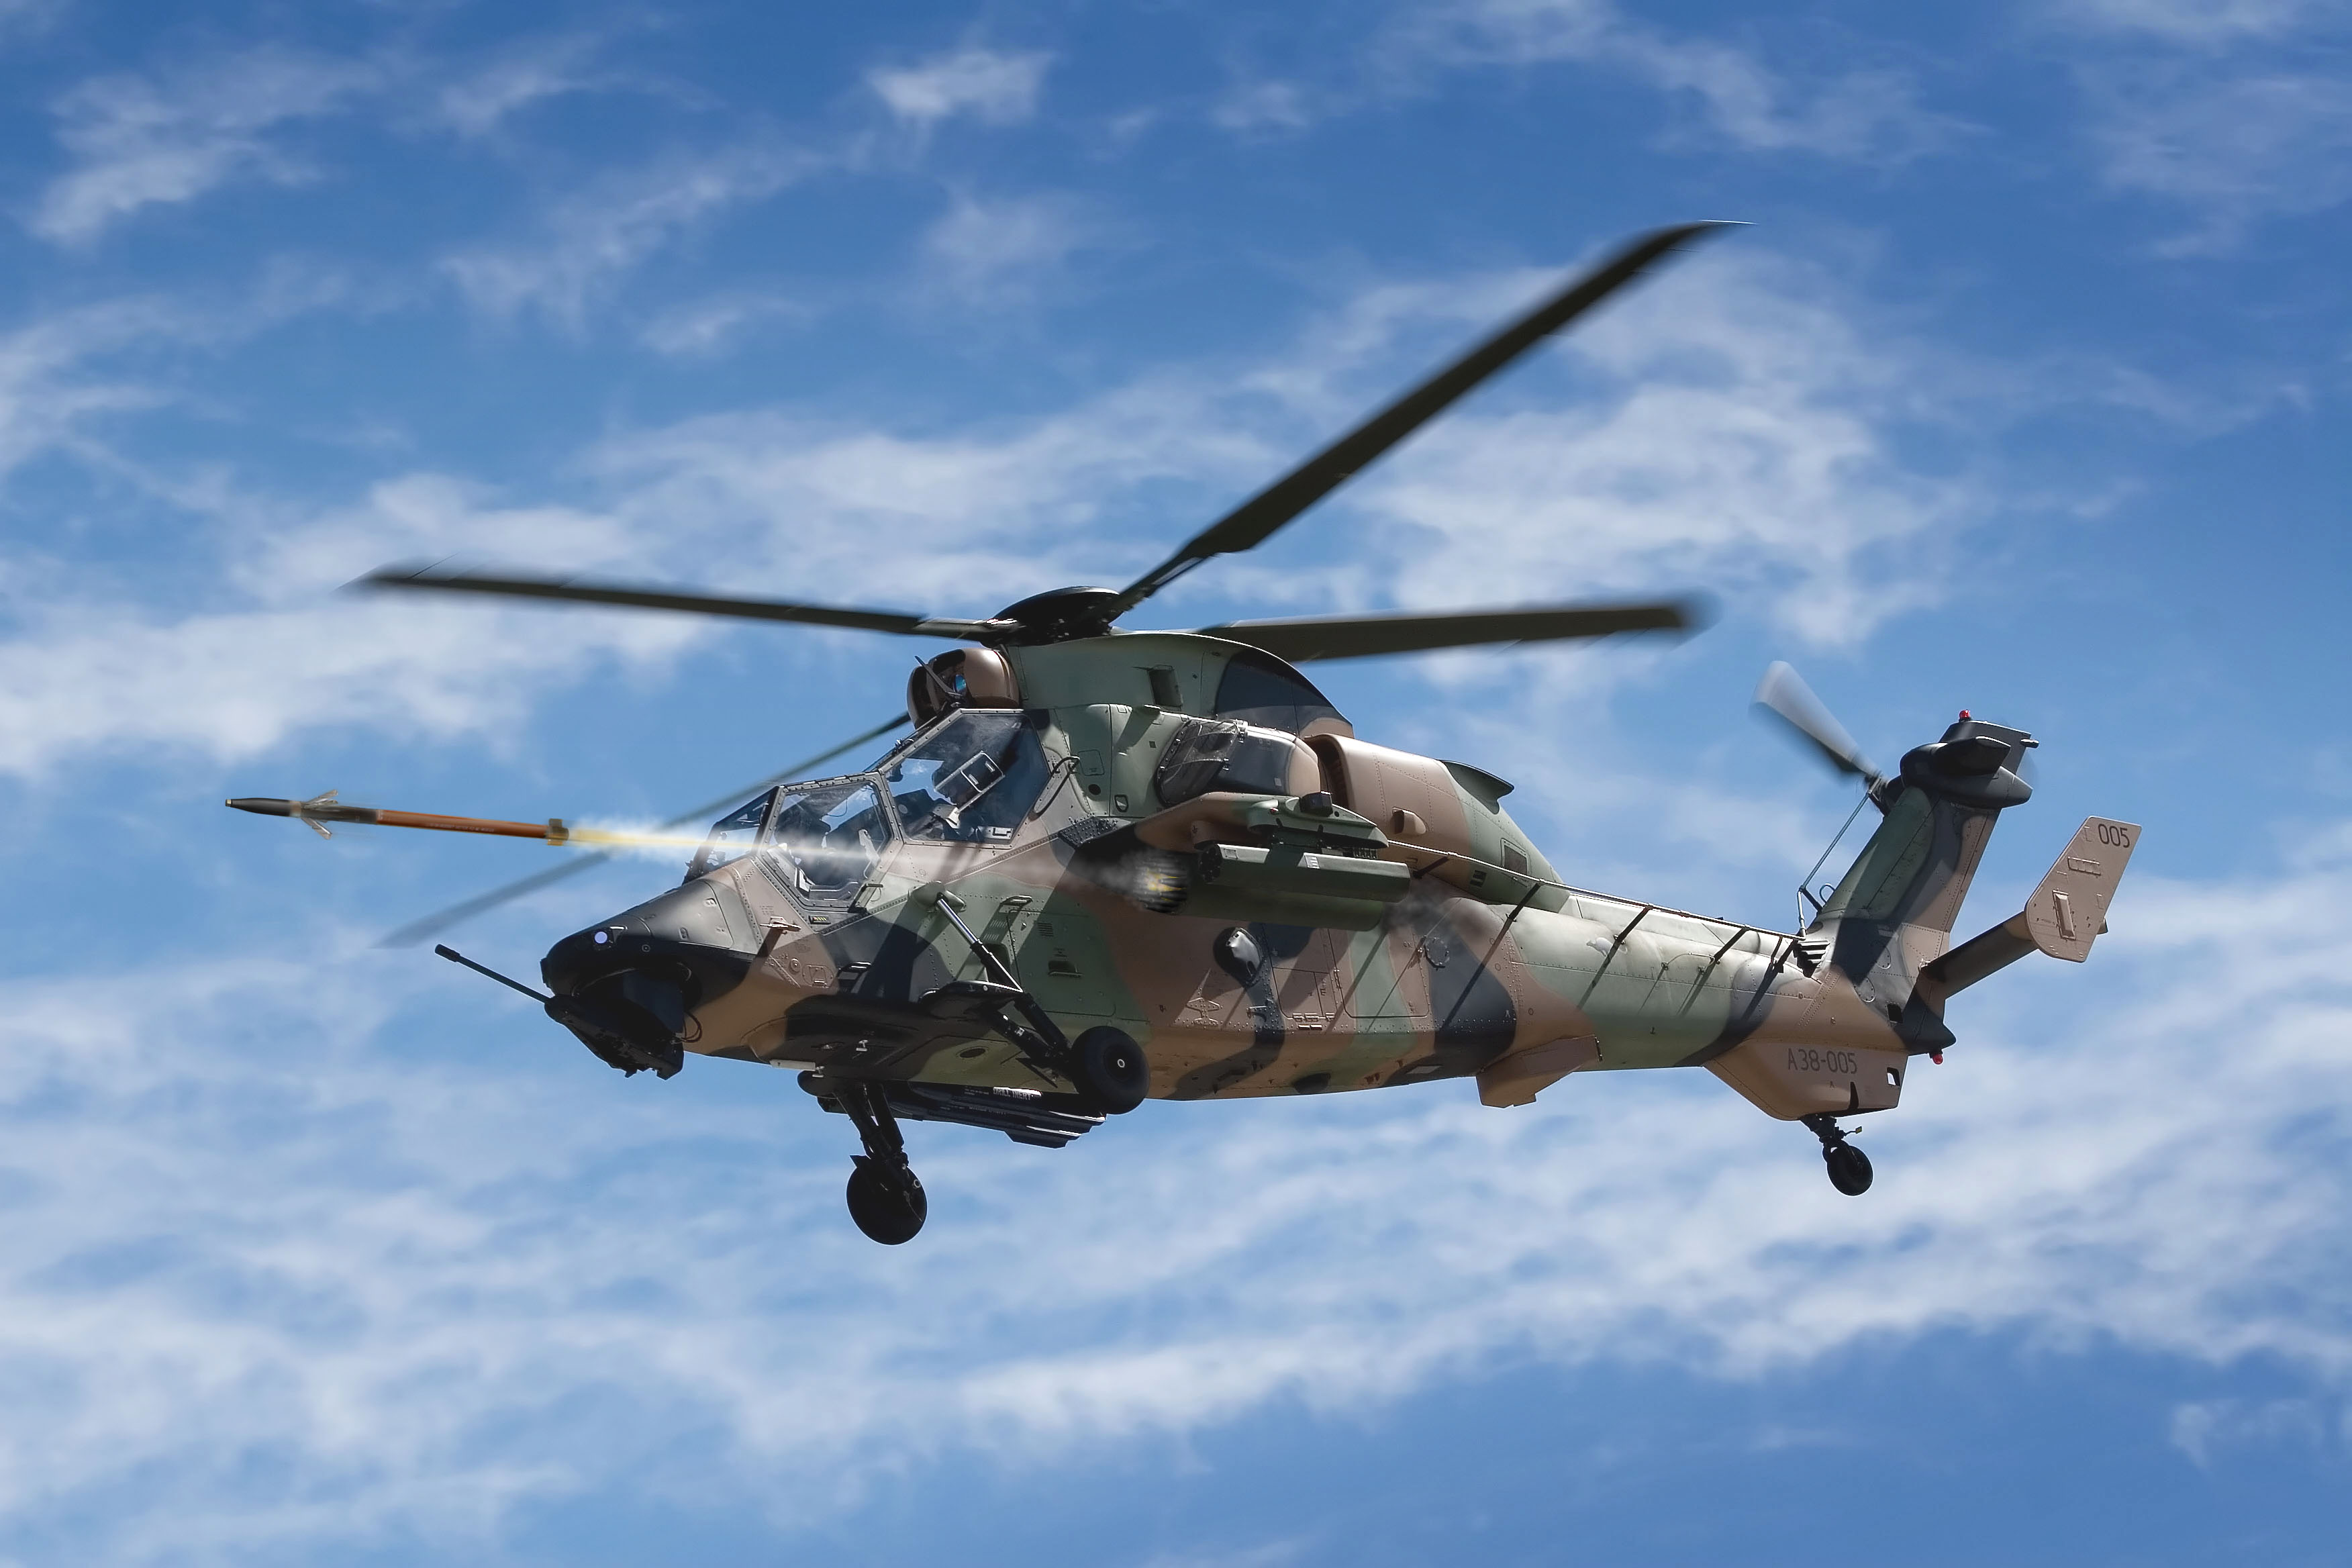 The Australian Defence Force aims to field the APKWS rocket on its Airbus Tiger Armed Reconnaissance Helicopter. Artist rendering provided by BAE Systems.